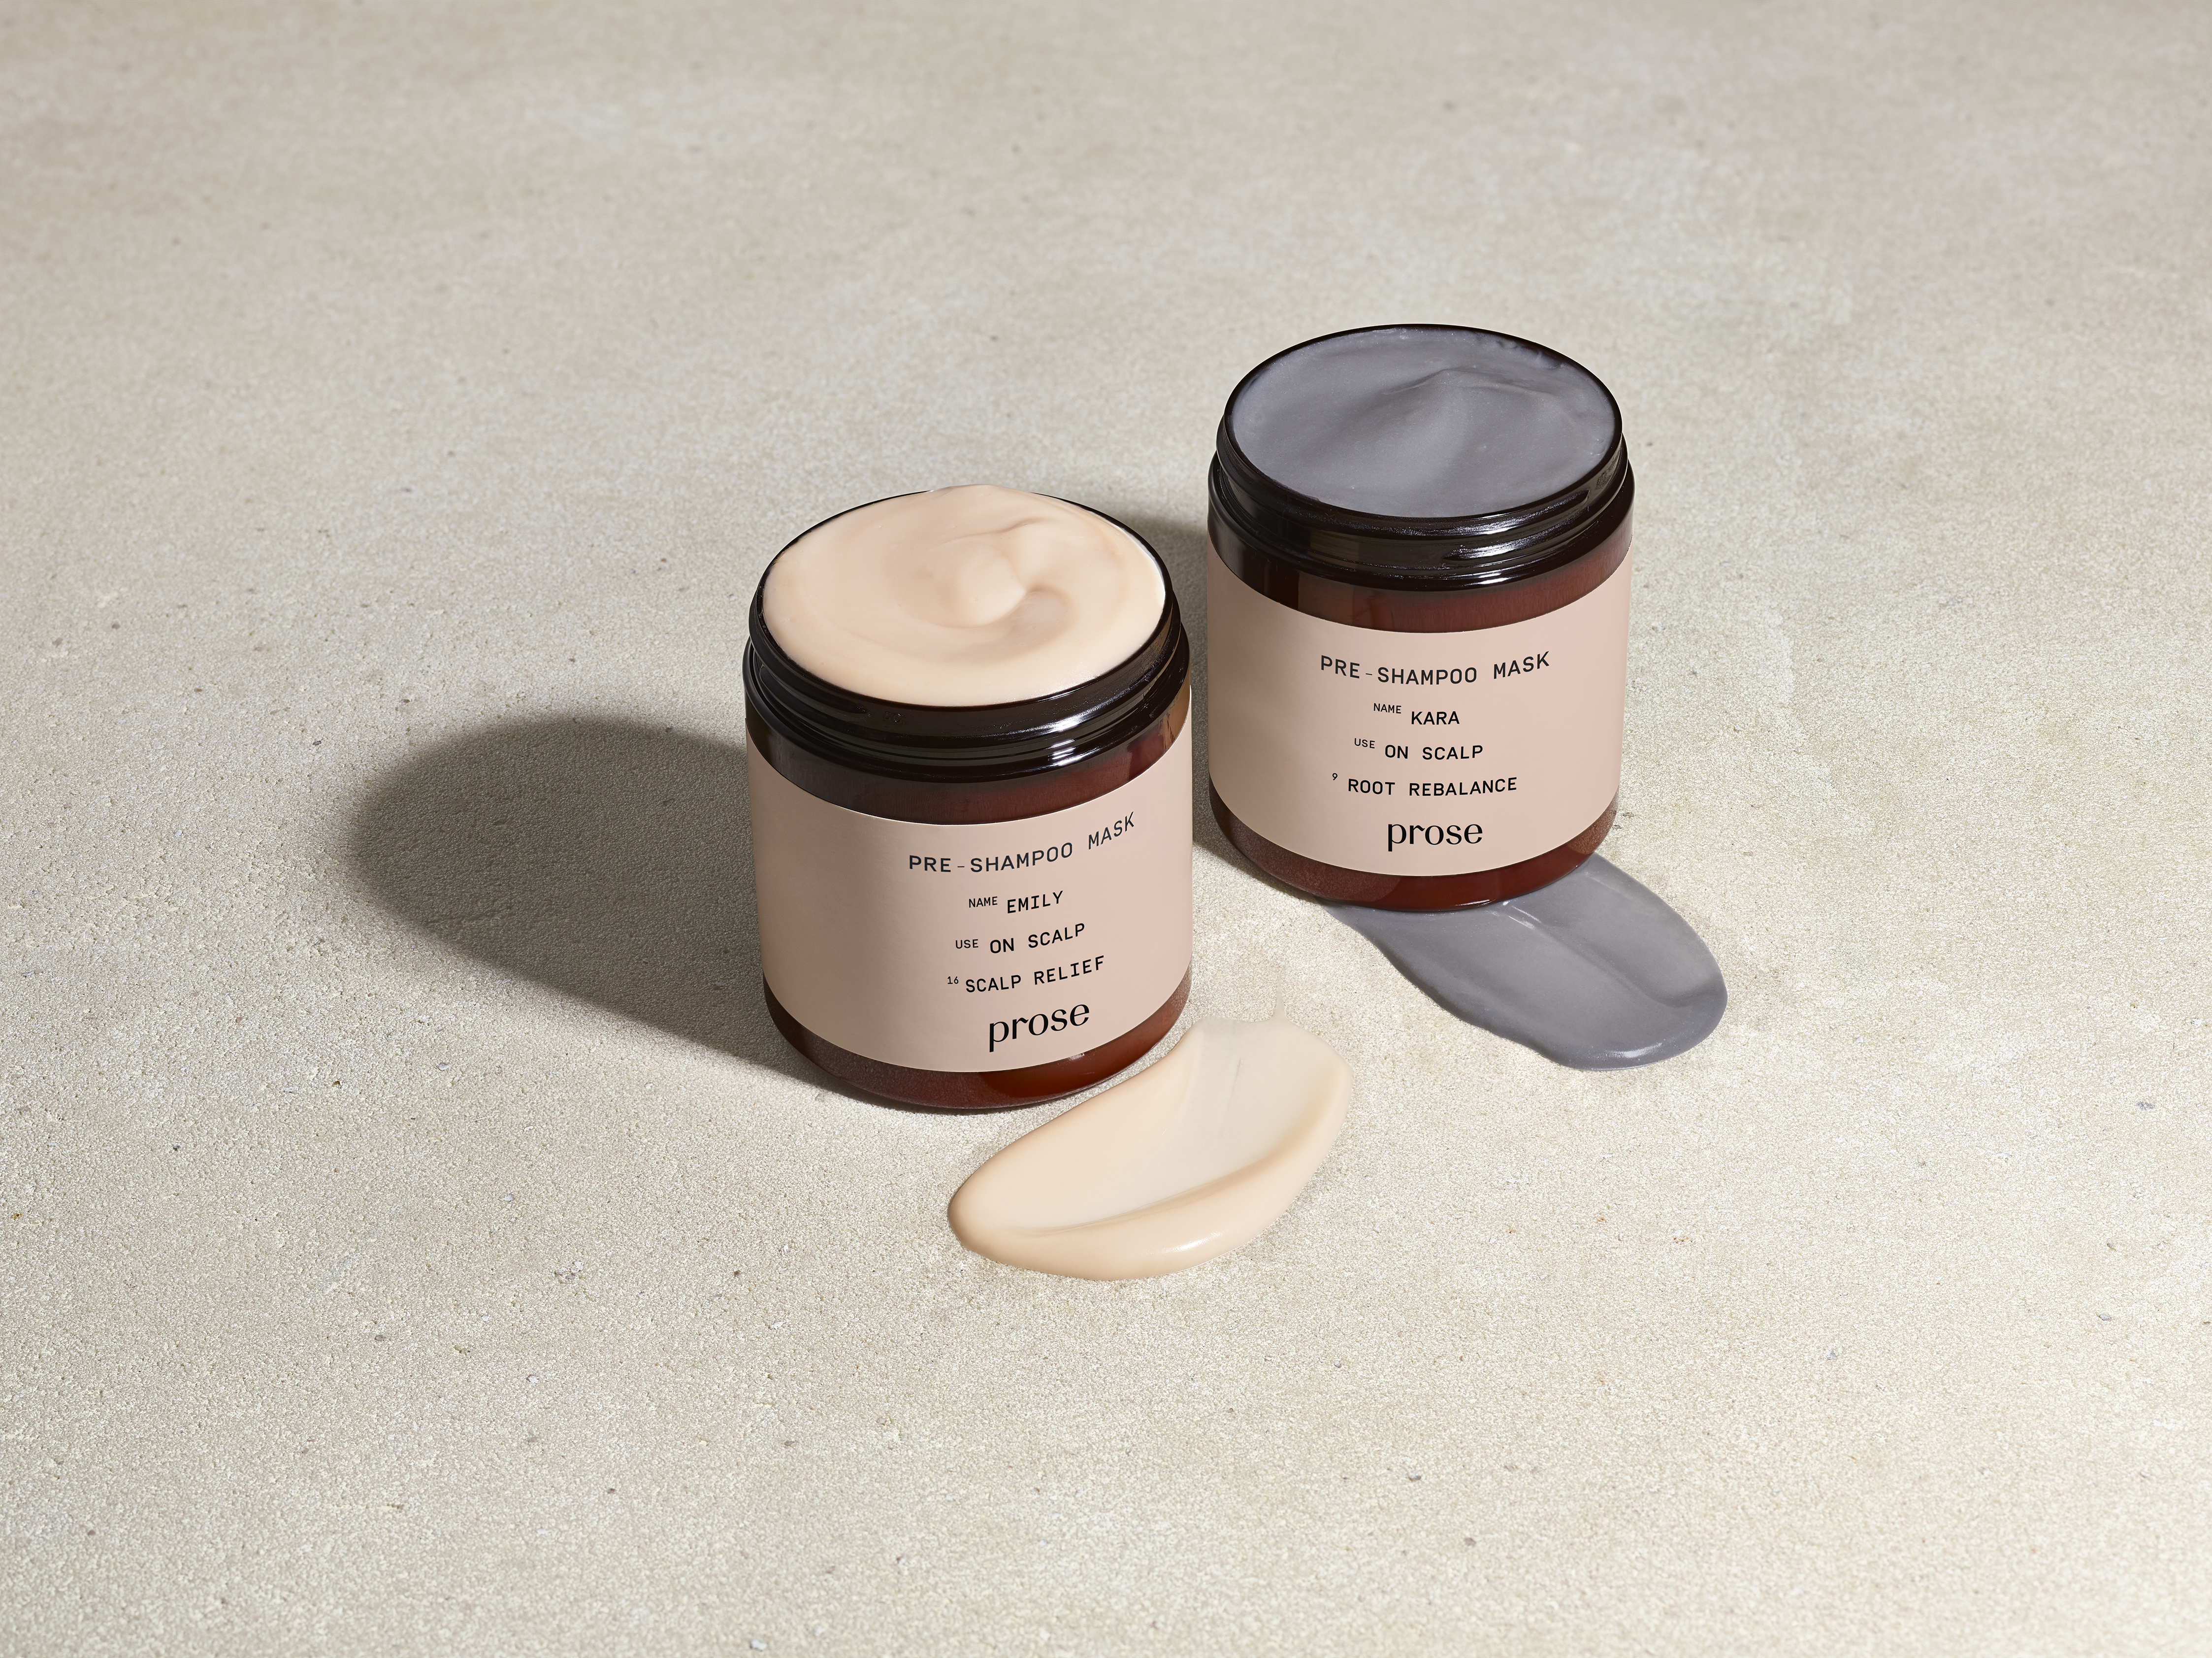 the Prose charcoal and grapefruit scalp mask sit next to each other with their lids open